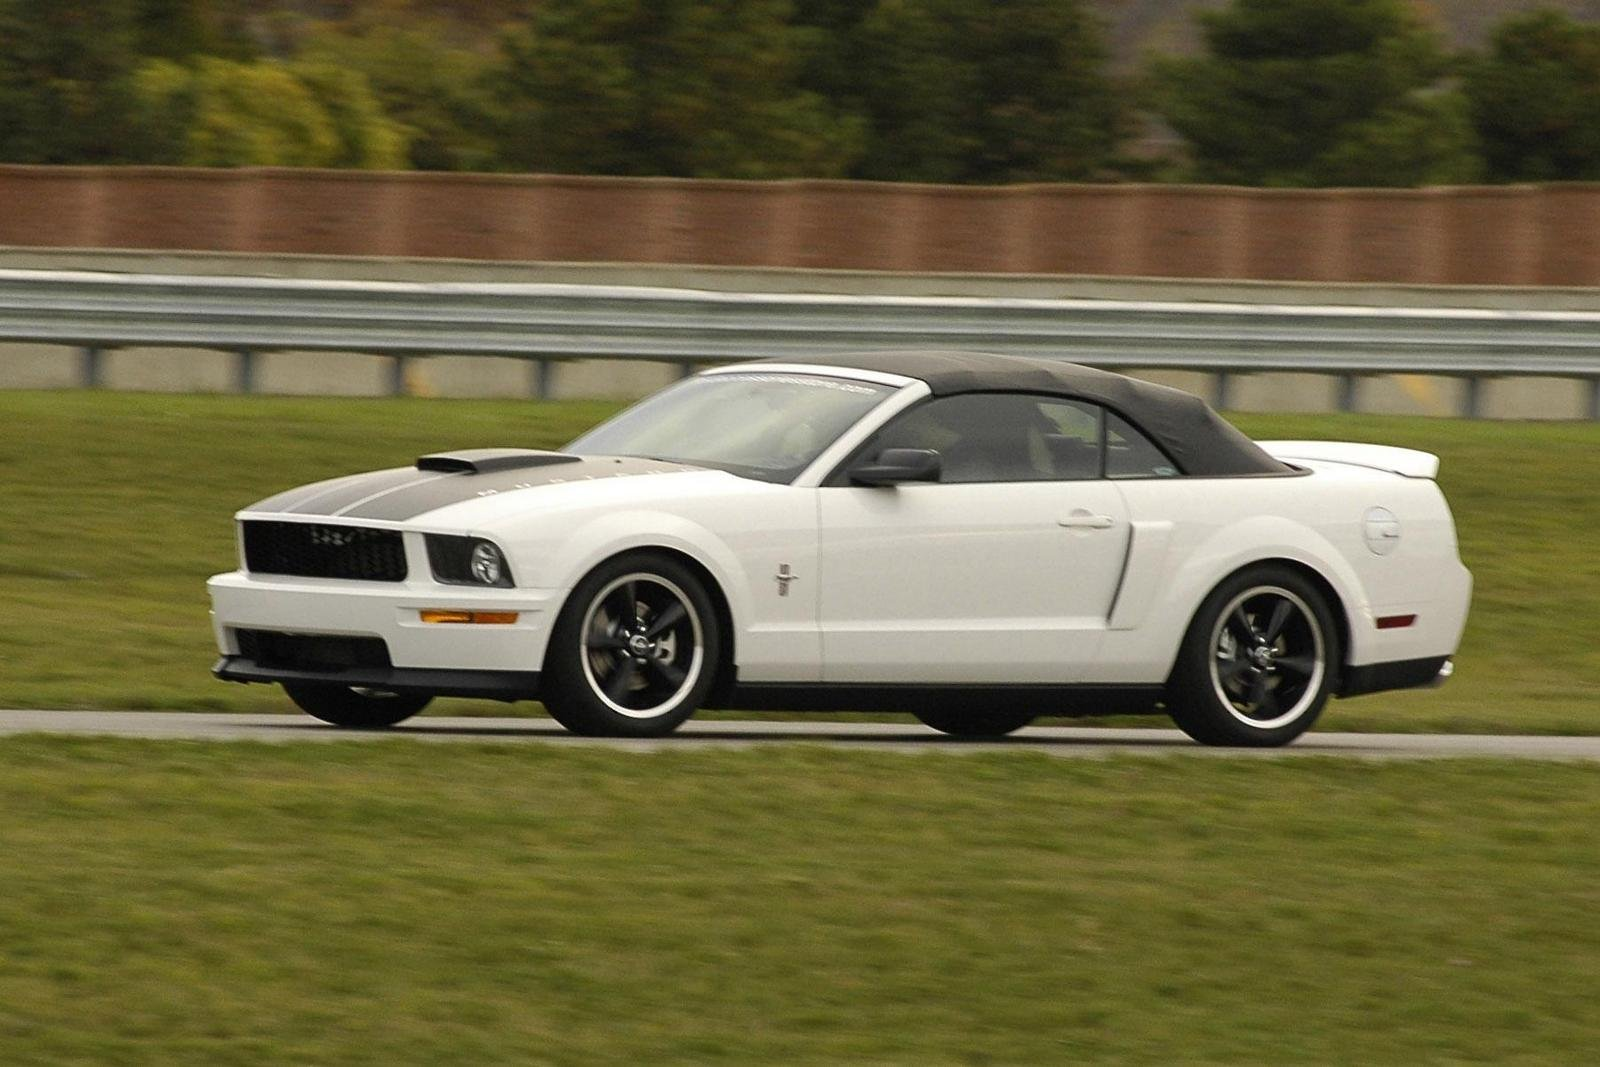 2007 ford project mustang gt picture 109135 car review. Black Bedroom Furniture Sets. Home Design Ideas